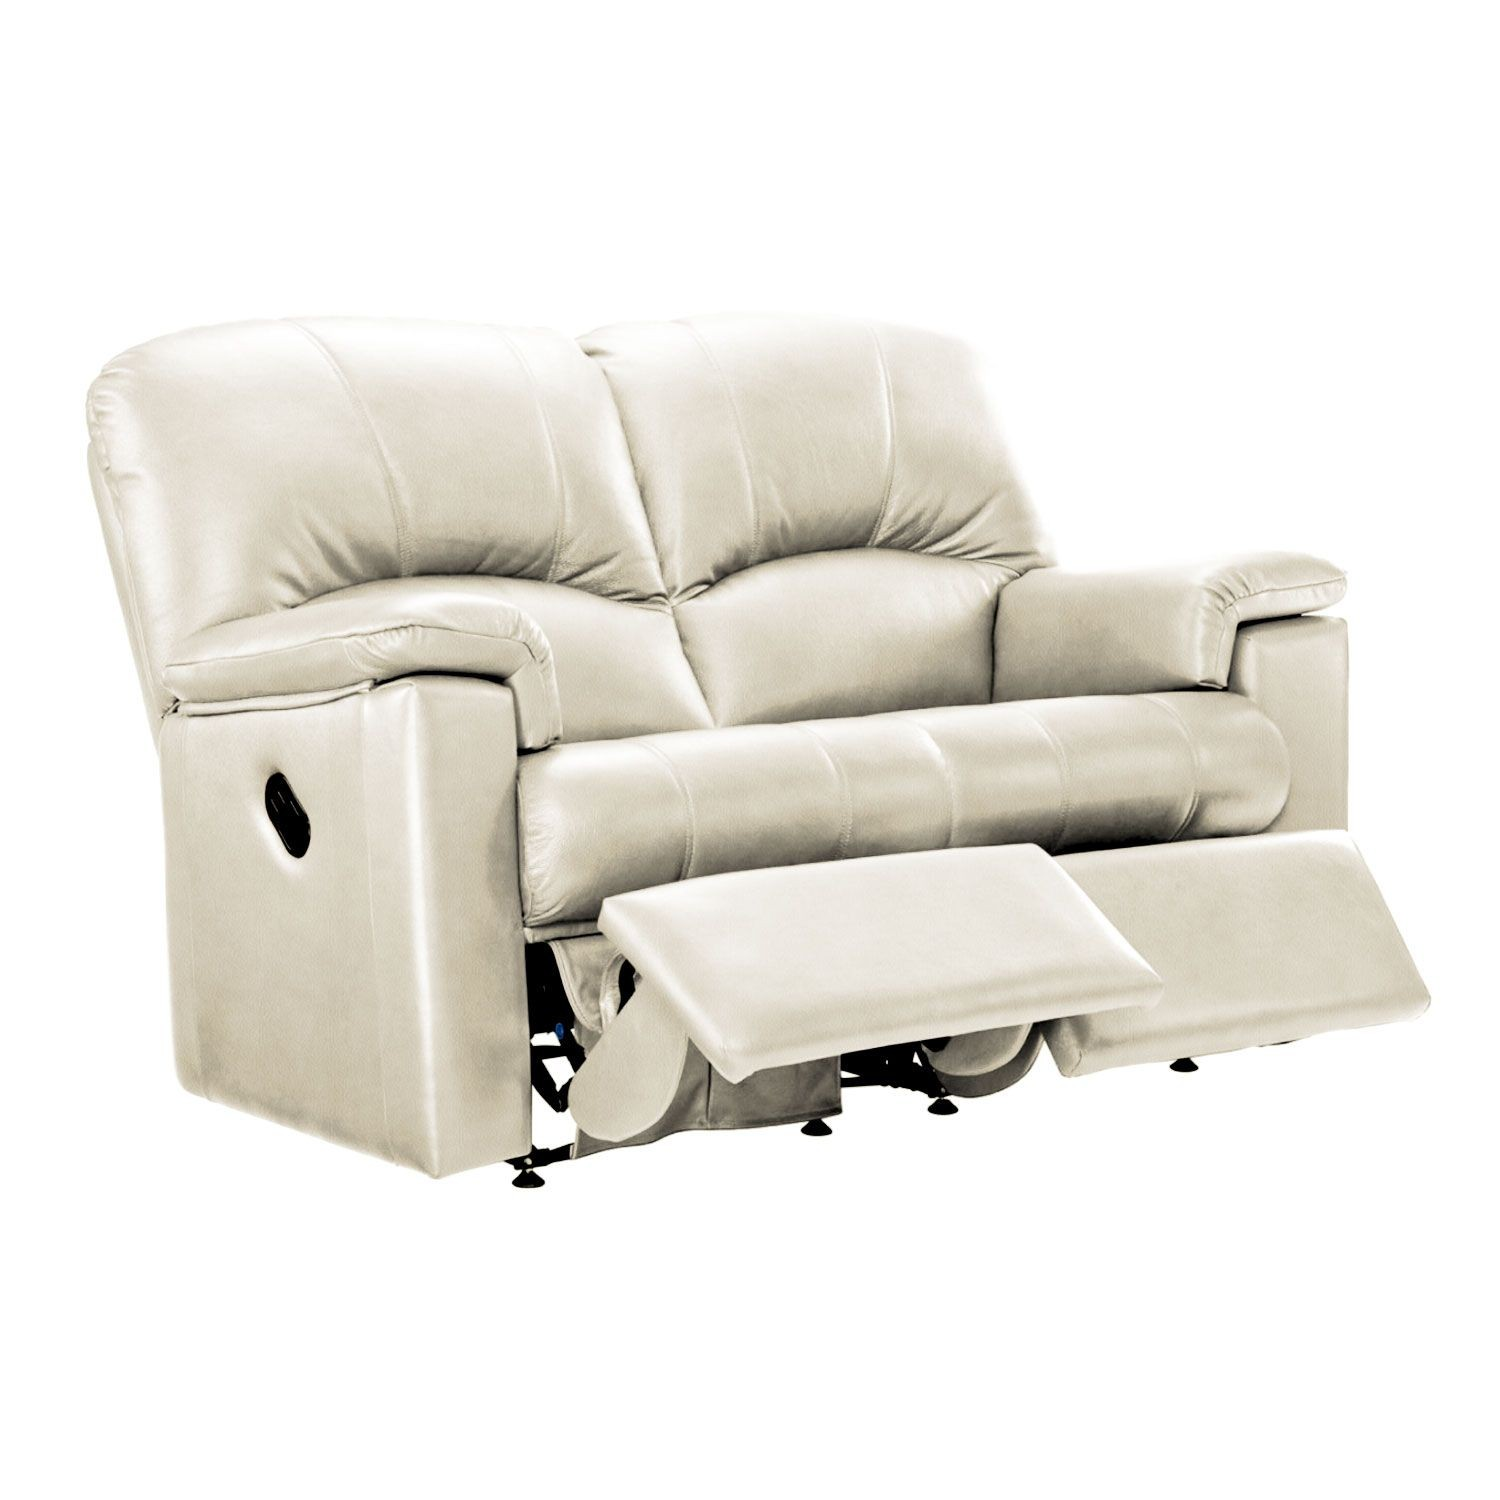 Prime G Plan Chloe 2 Seater Double Manual Recliner Leather Sofa Machost Co Dining Chair Design Ideas Machostcouk